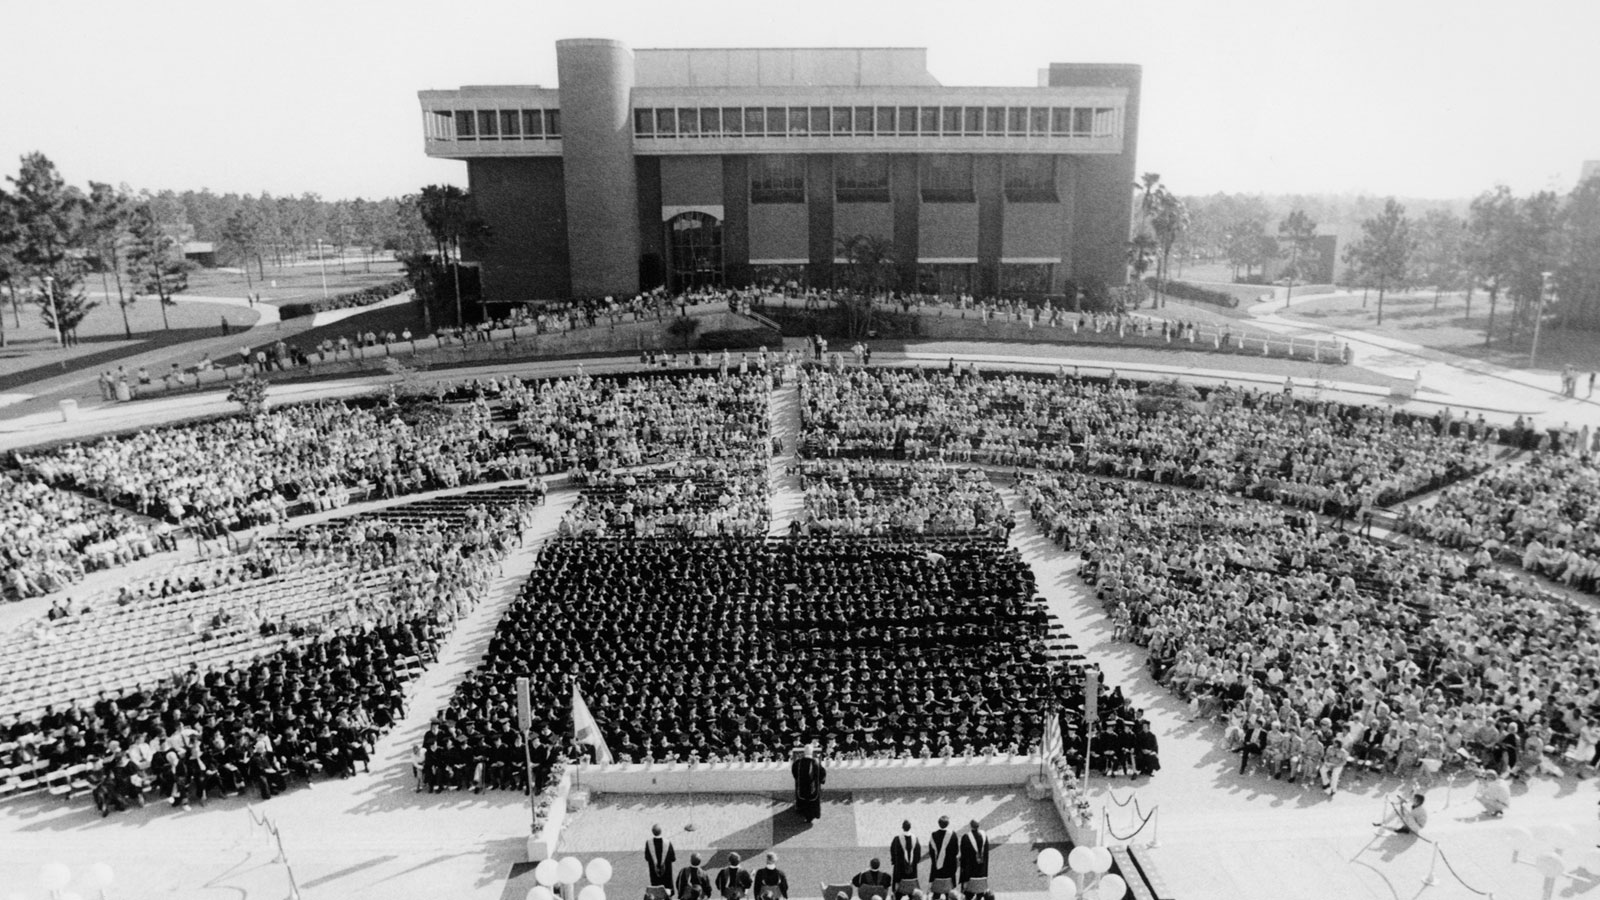 Back in the Day: Commencement Through the Years